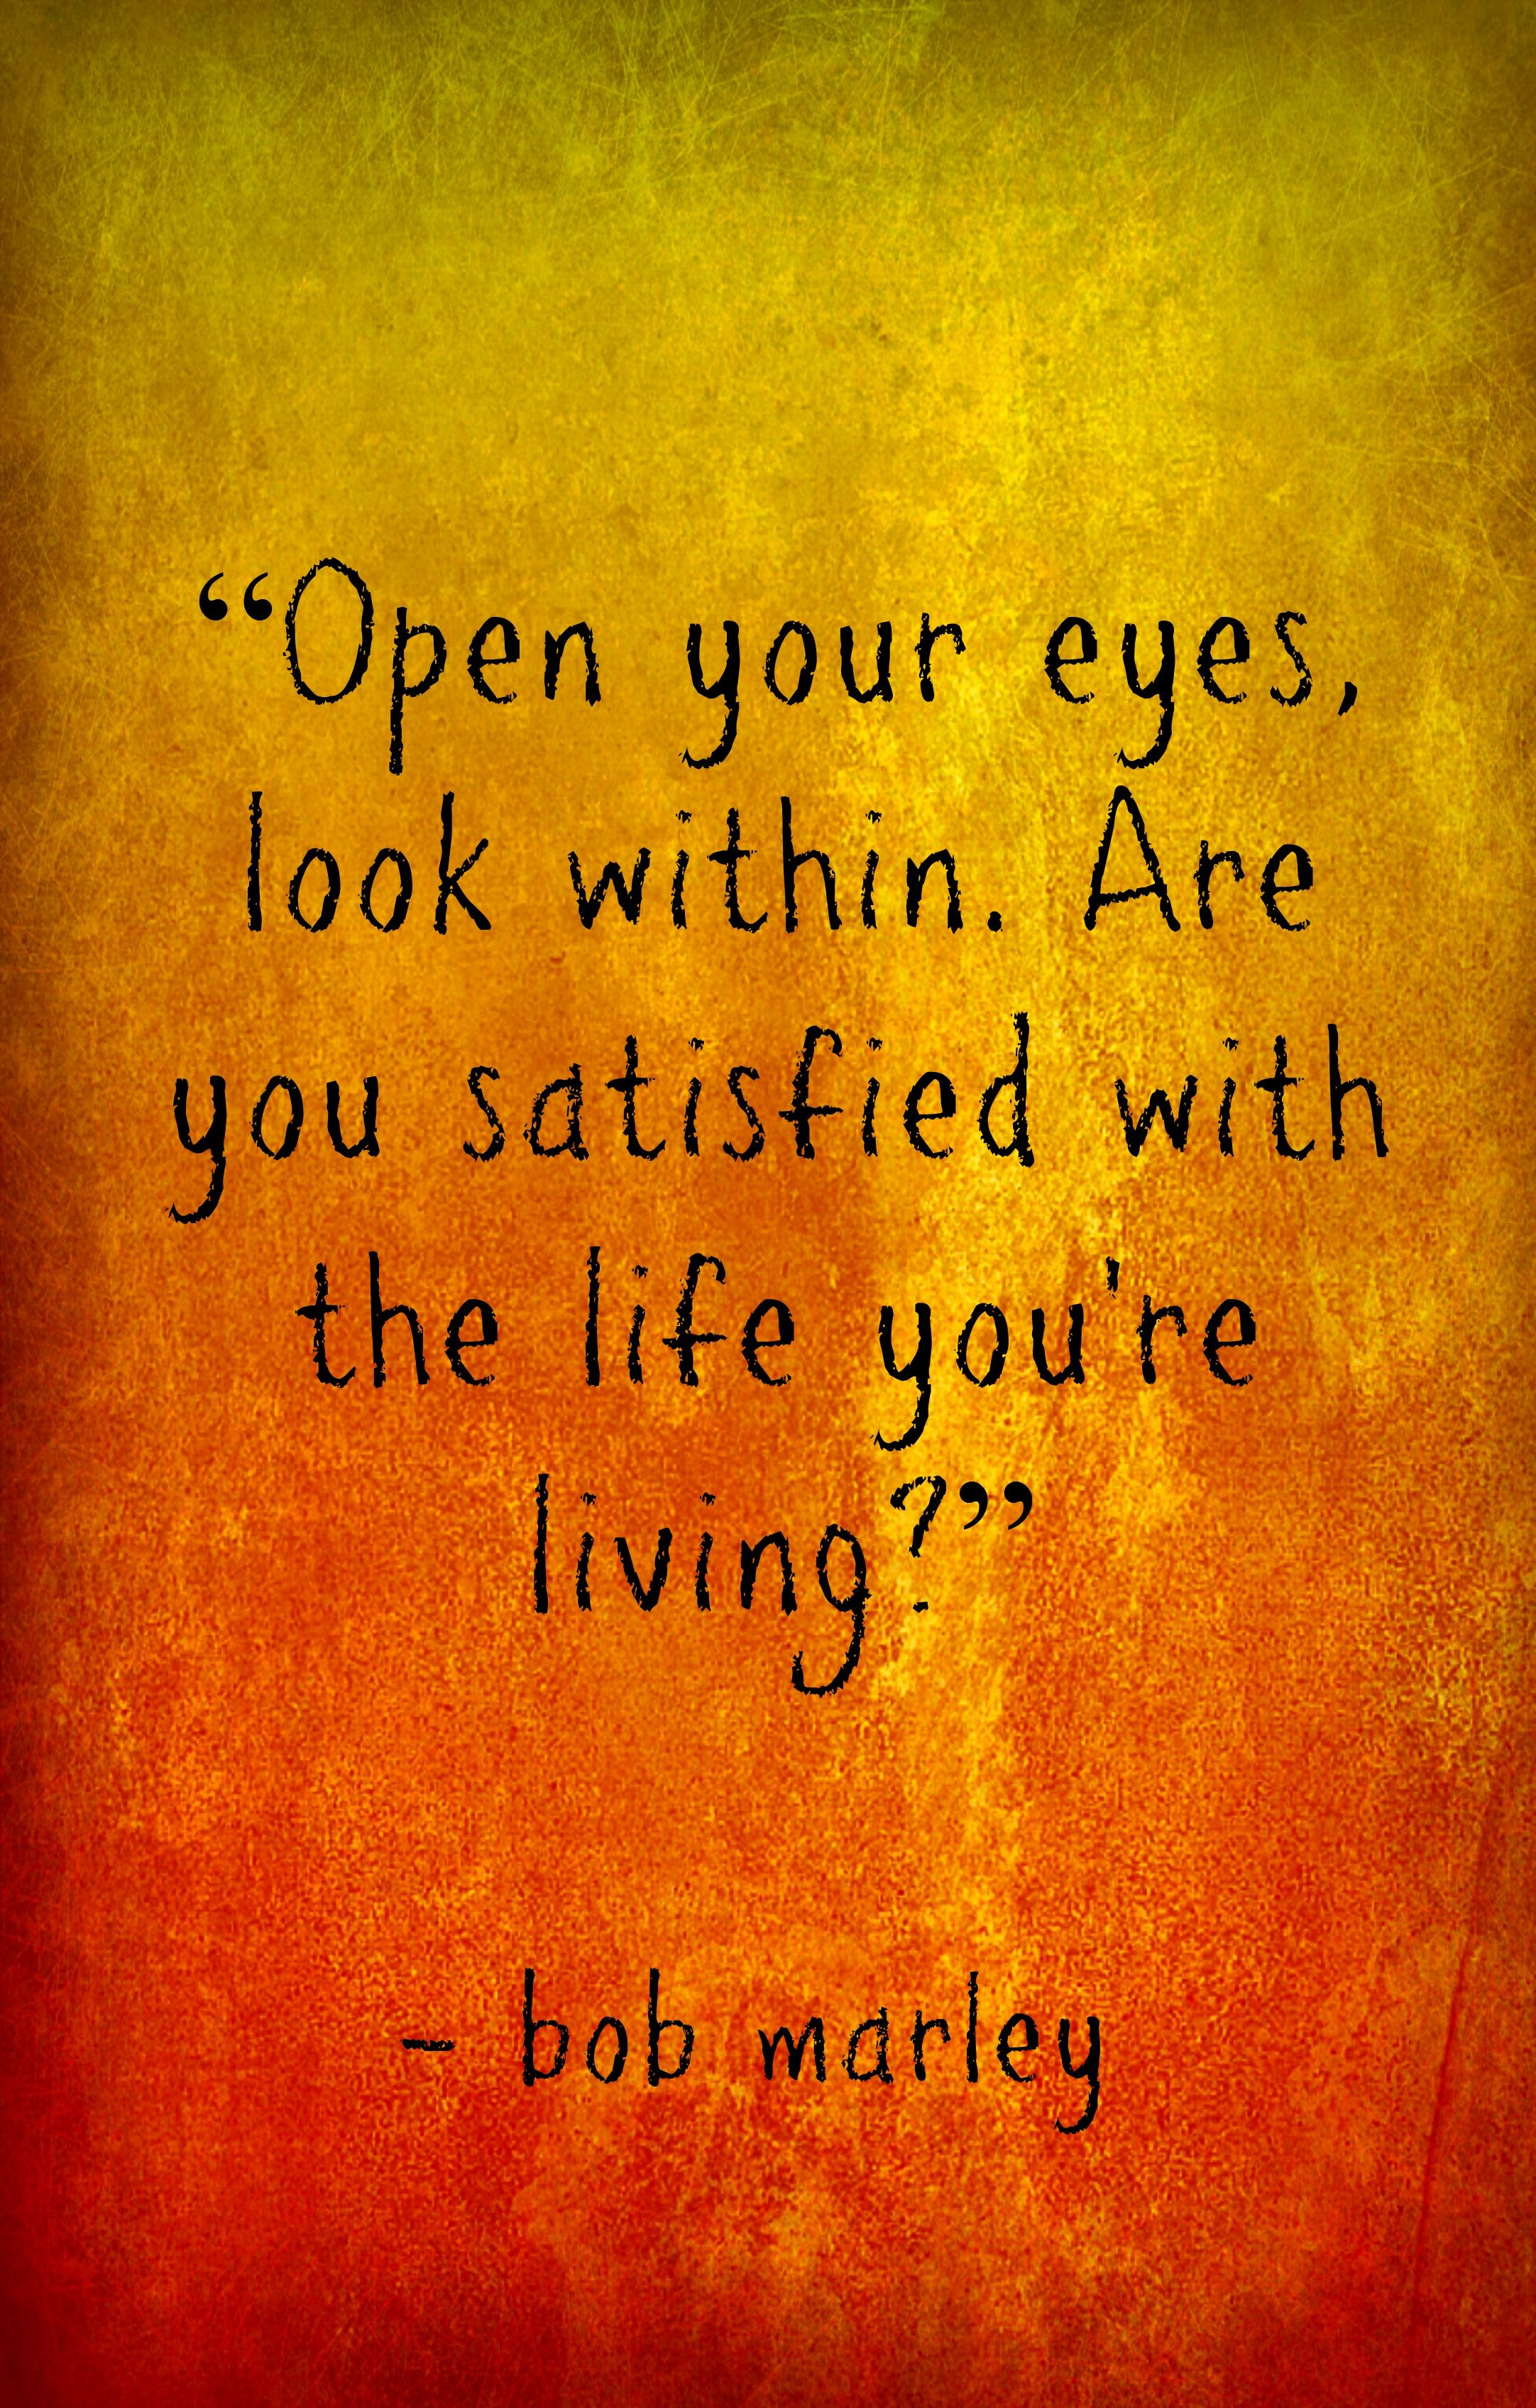 Bob Marley quotes, open your eyes look within Bob marley